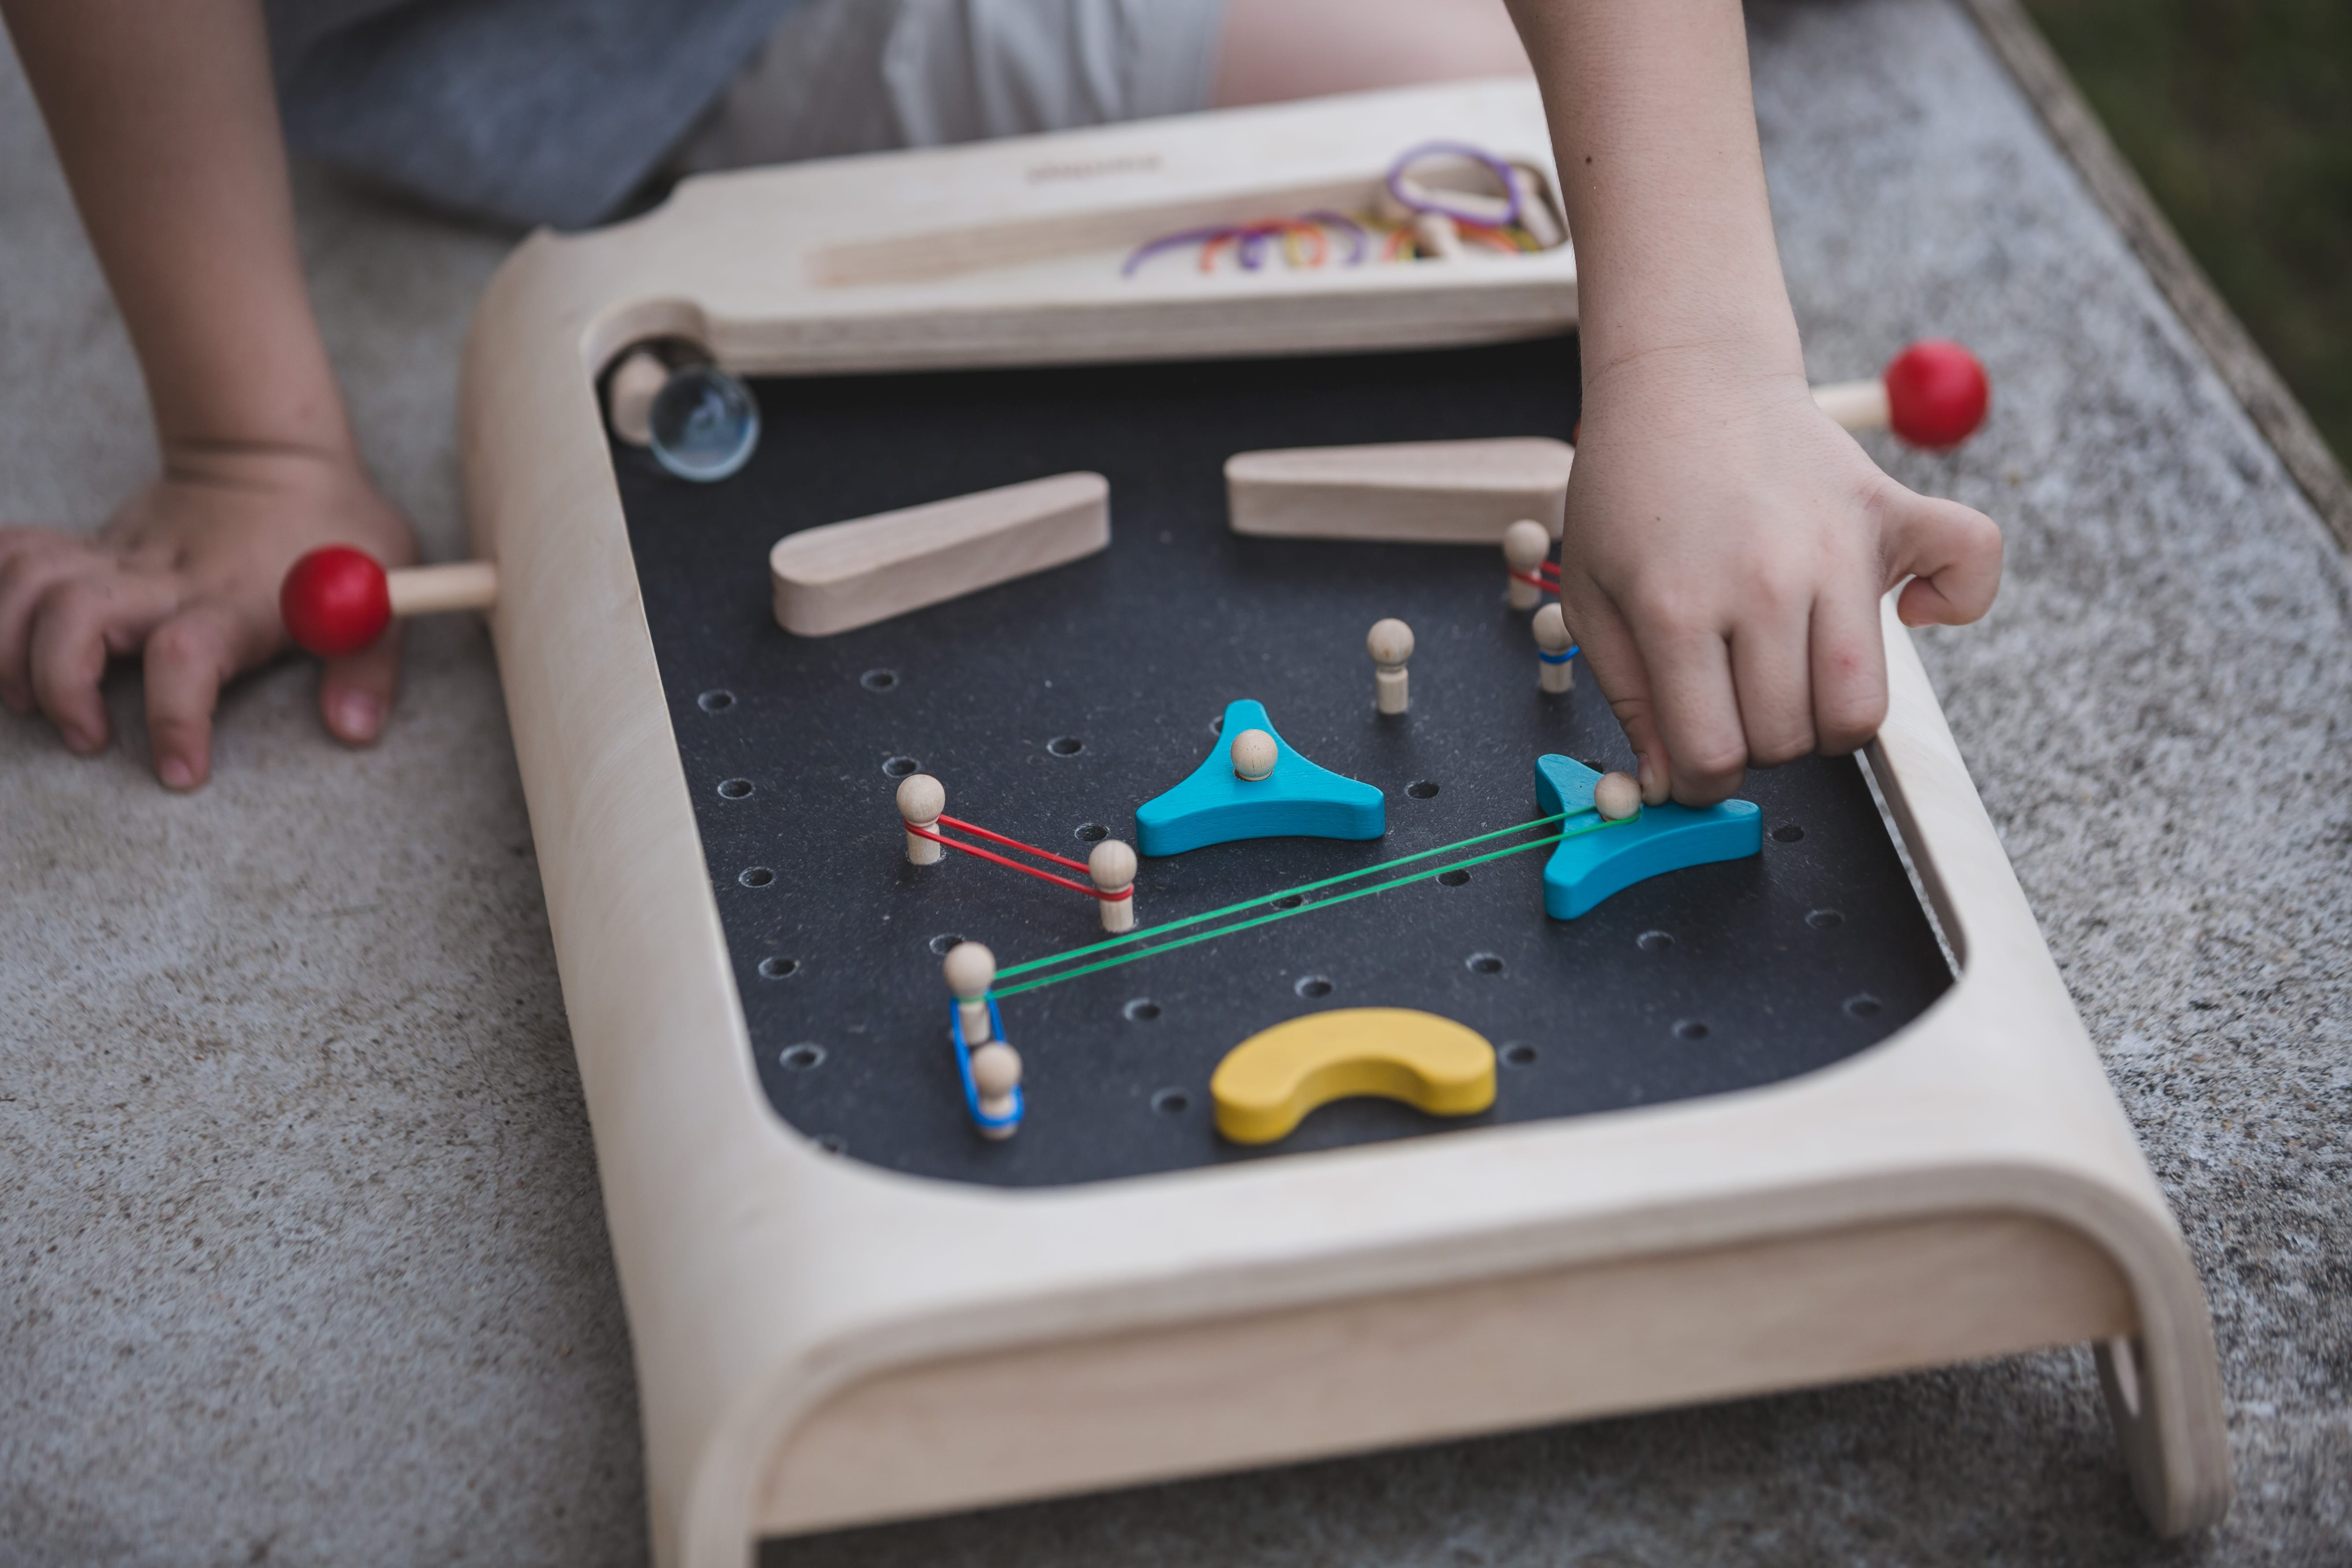 4641_PlanToys_PINBALL_Game_and_Puzzles_Concentration_Coordination_Logical_Social_Language_and_Communications_Problem_Solving_3yrs_Wooden_toys_Education_toys_Safety_Toys_Non-toxic_2.jpg